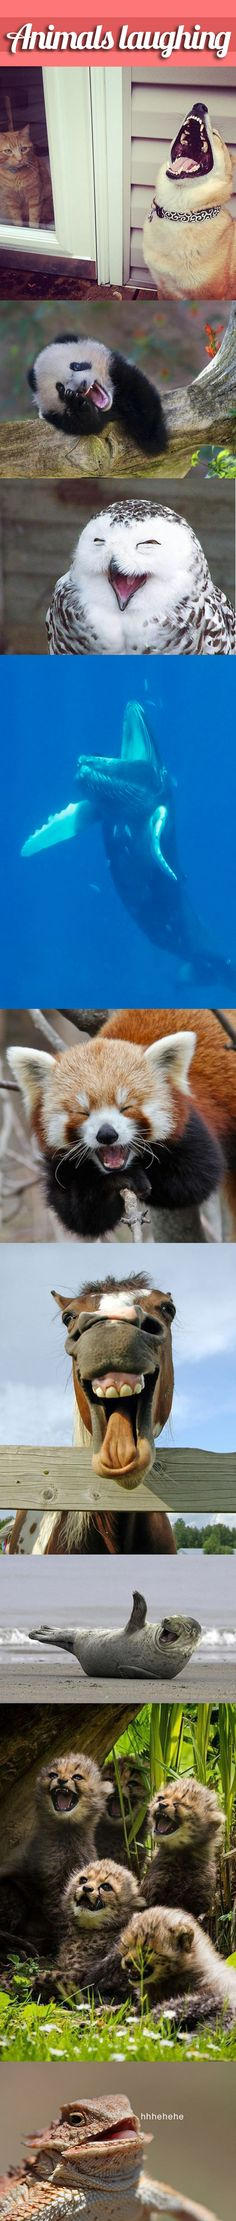 Animals laughing… funny animals, hors, lizard, cat, red pandas, happy animals, seal, whale, anim laugh